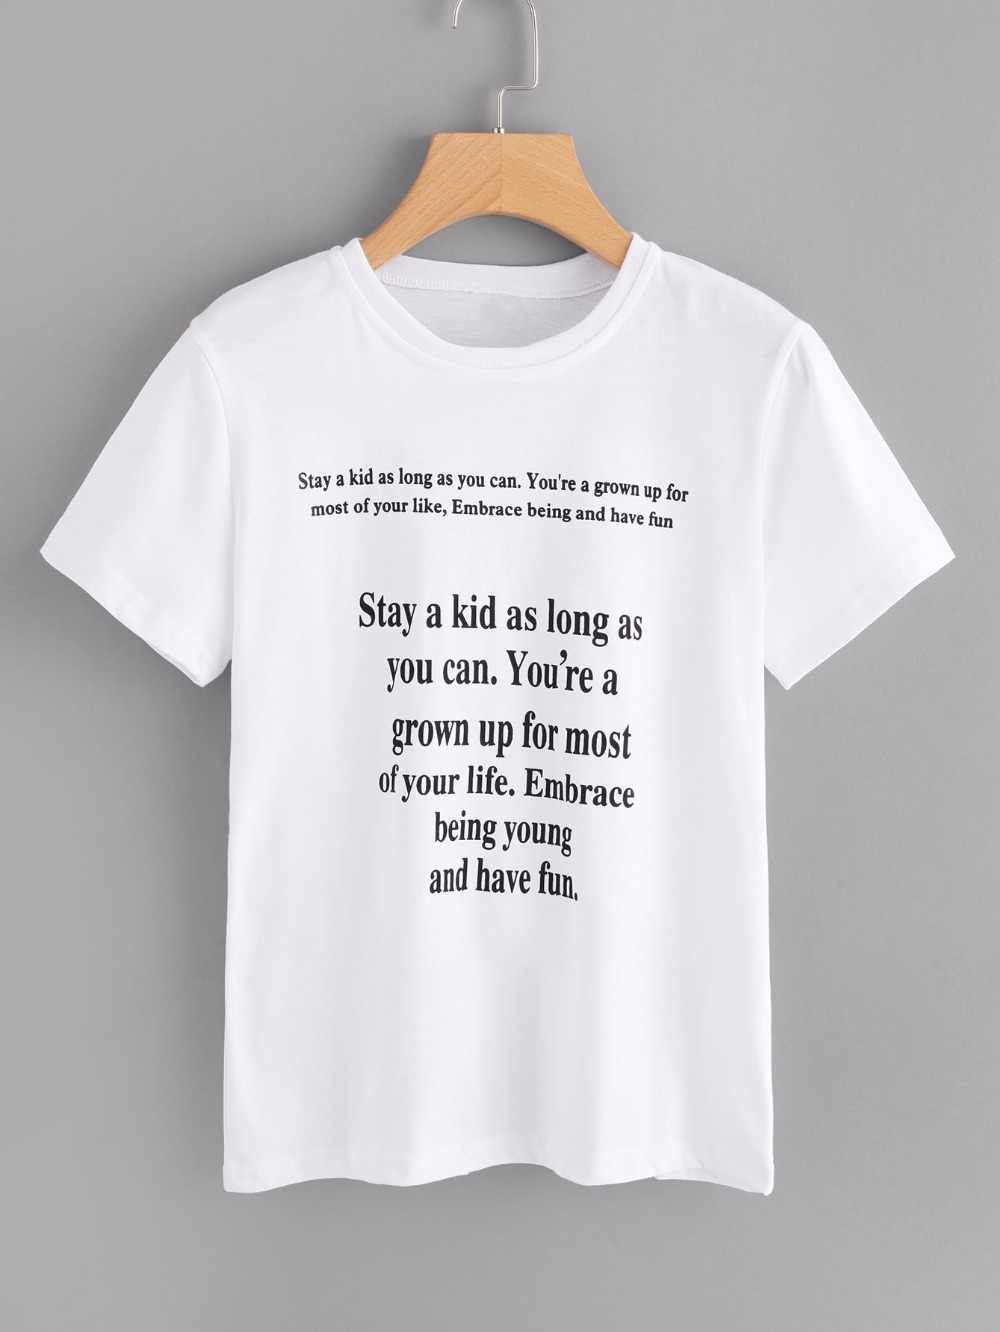 cb0c7e8a6e0b6 Stay a kid as long as you can t shirt funny slogan 90s women fashion ...